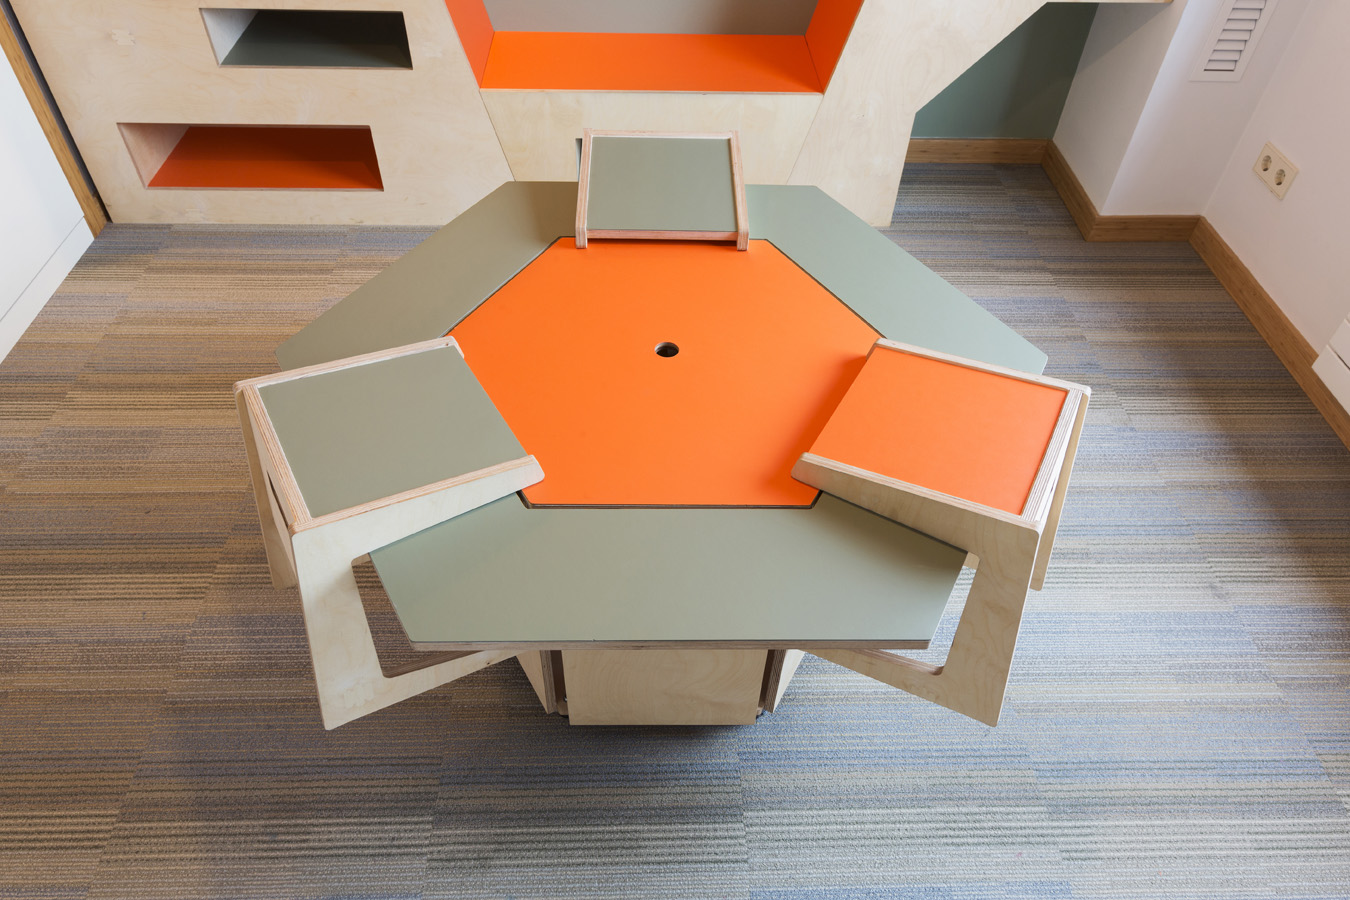 funky table design for kids room, green and orange finish